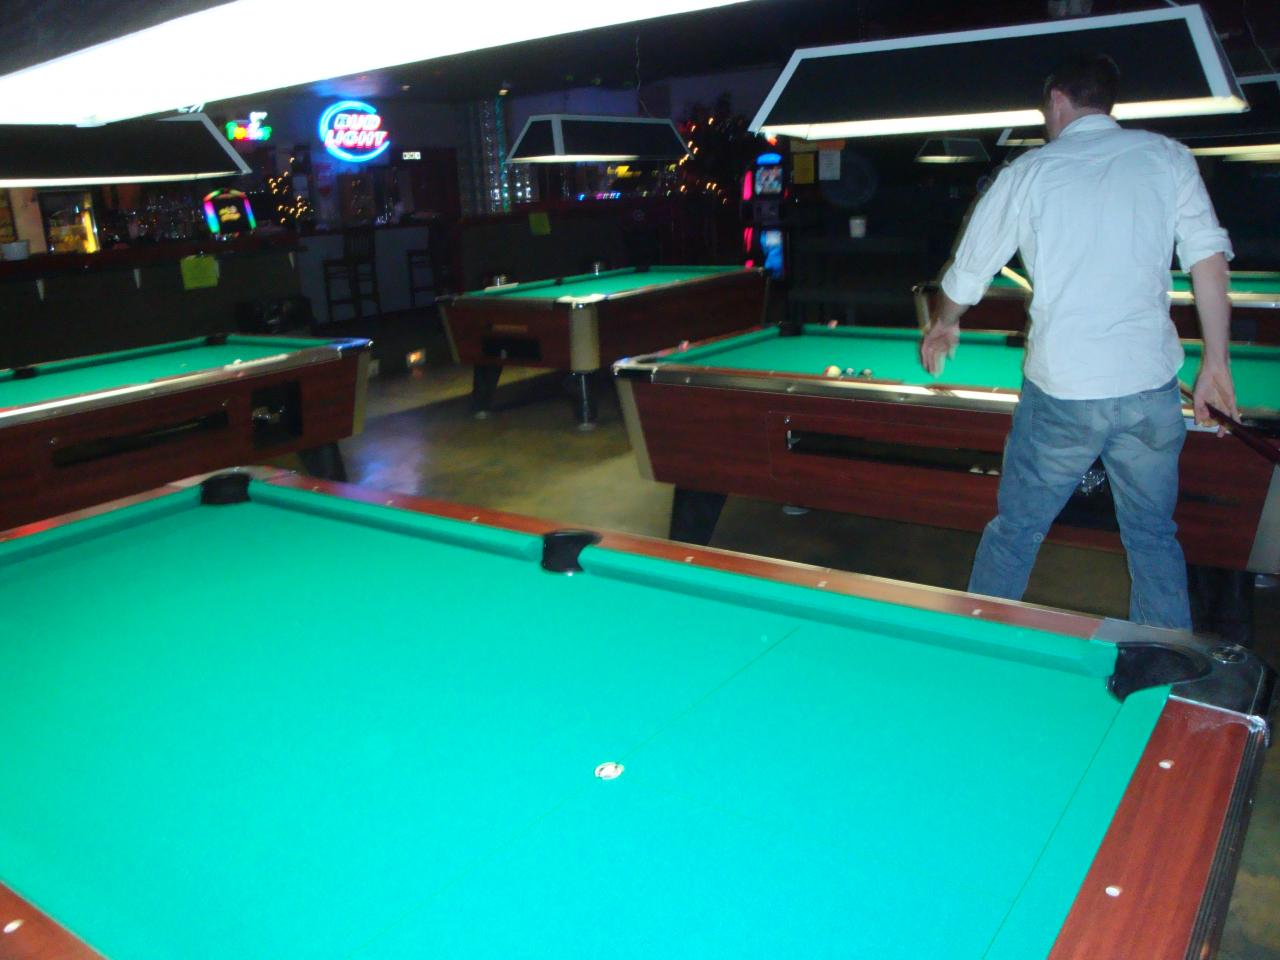 Brunswick Pool Table Prices 10 - 7' coin-op, bar box pool tables - AFTER recovery